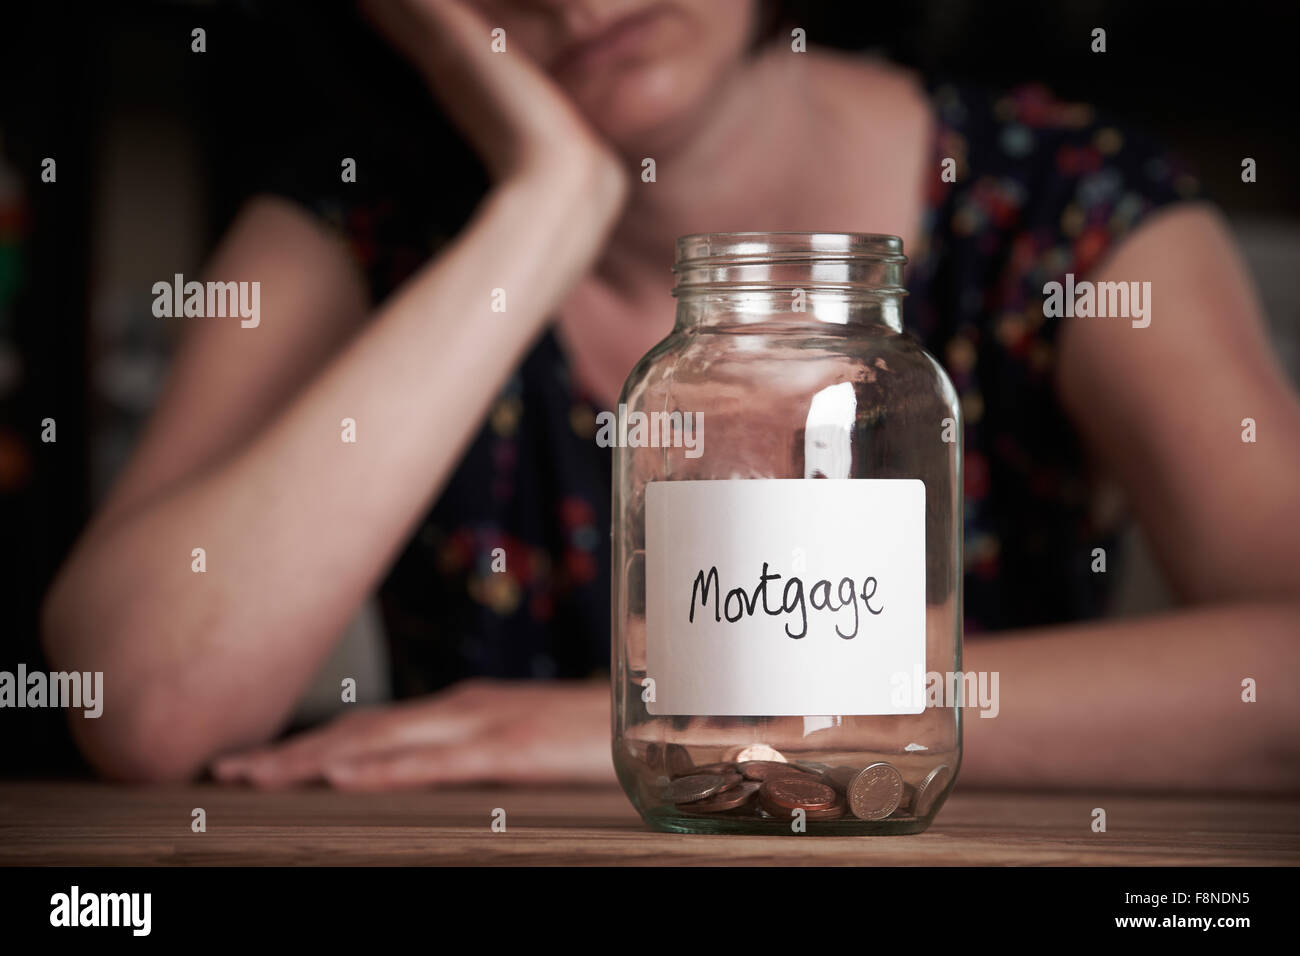 Depressed Woman Looking At Jar Labelled Mortgage - Stock Image